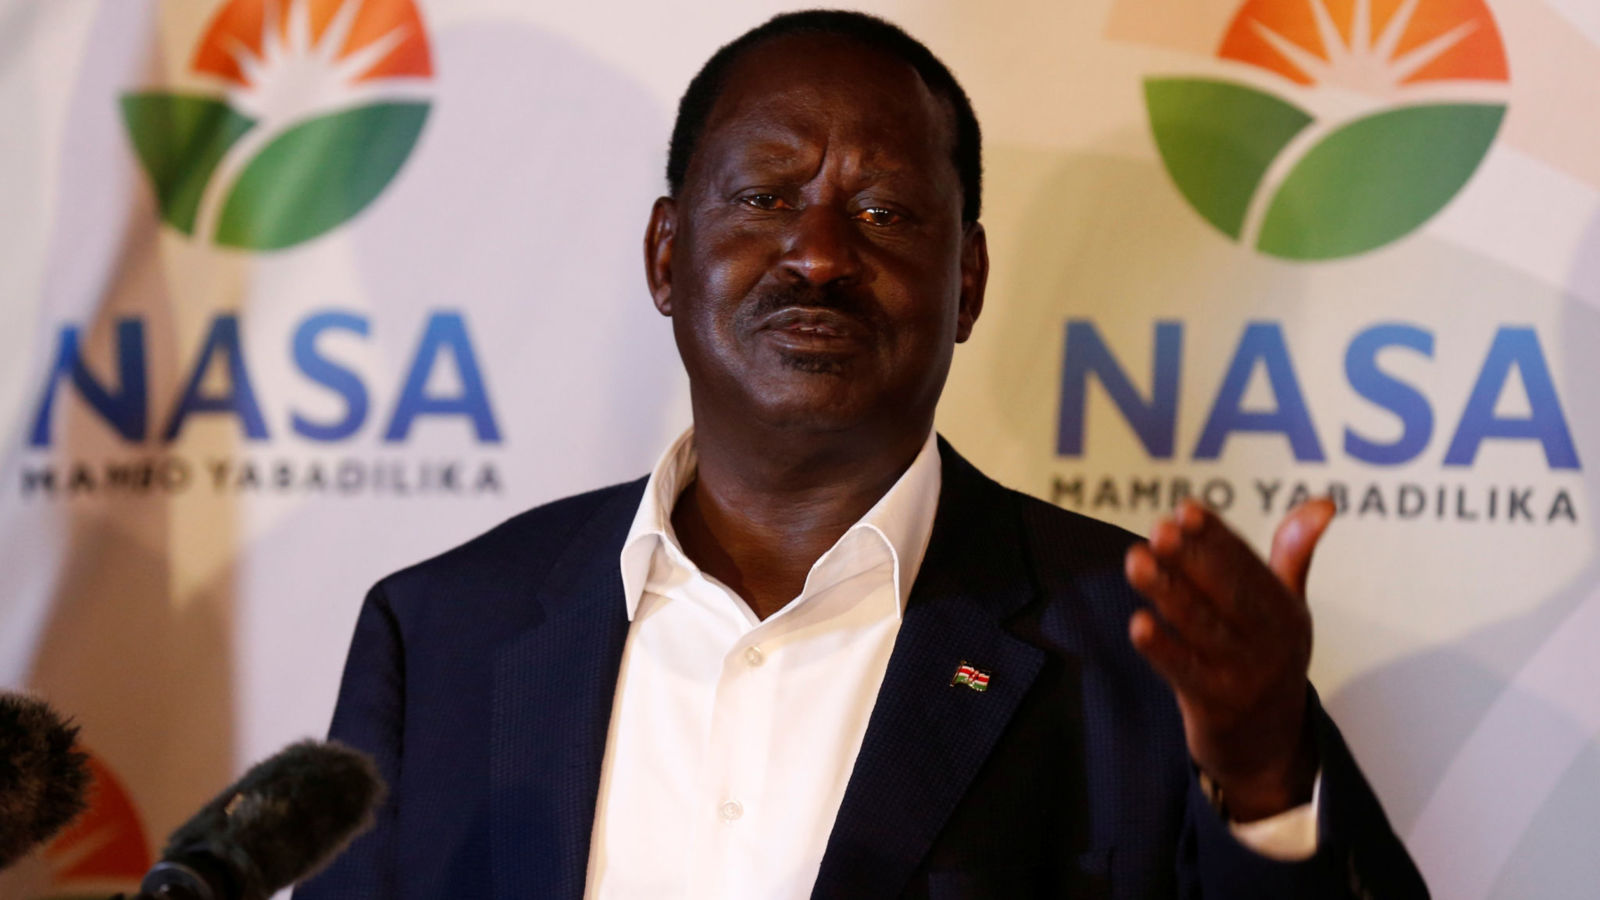 Kenyan opposition leader Raila Odinga, the presidential candidate of the National Super Alliance (NASA) coalition, address a news conference on the concluded presidential election in Nairobi, Kenya, August 9, 2017. REUTERS/Thomas Mukoya - RTS1AYOT